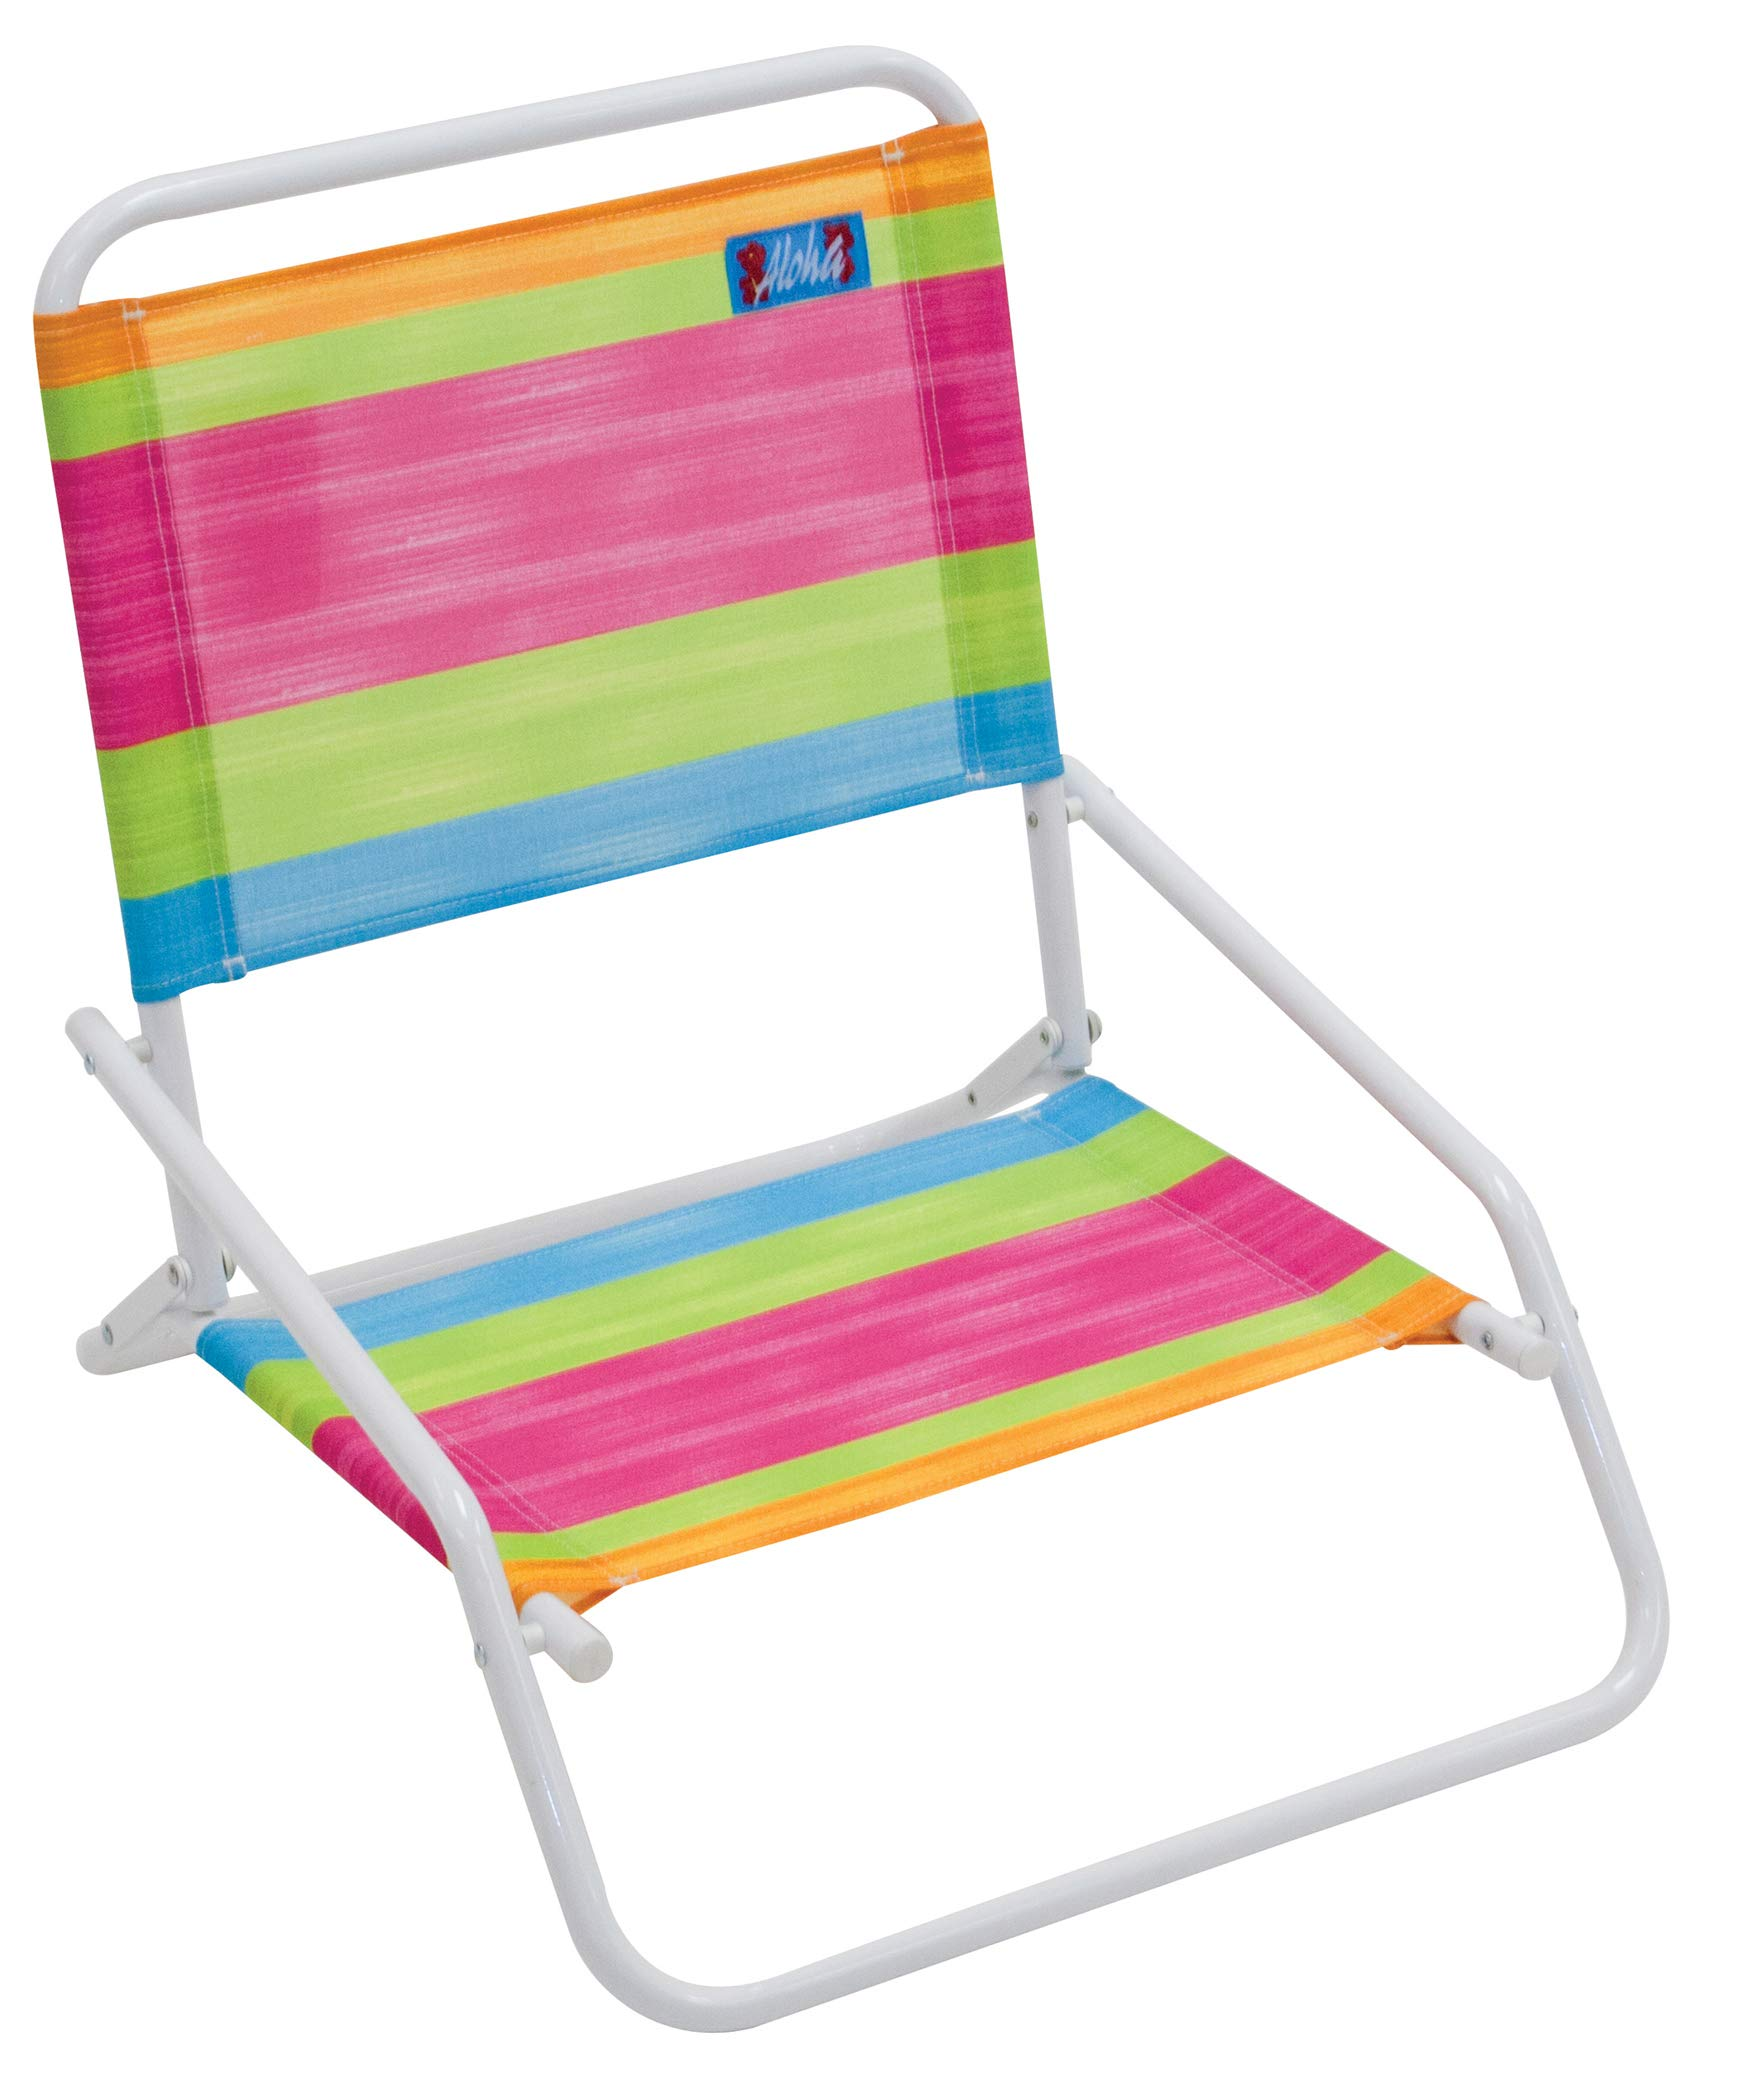 Rio Wave Position Sand Chair